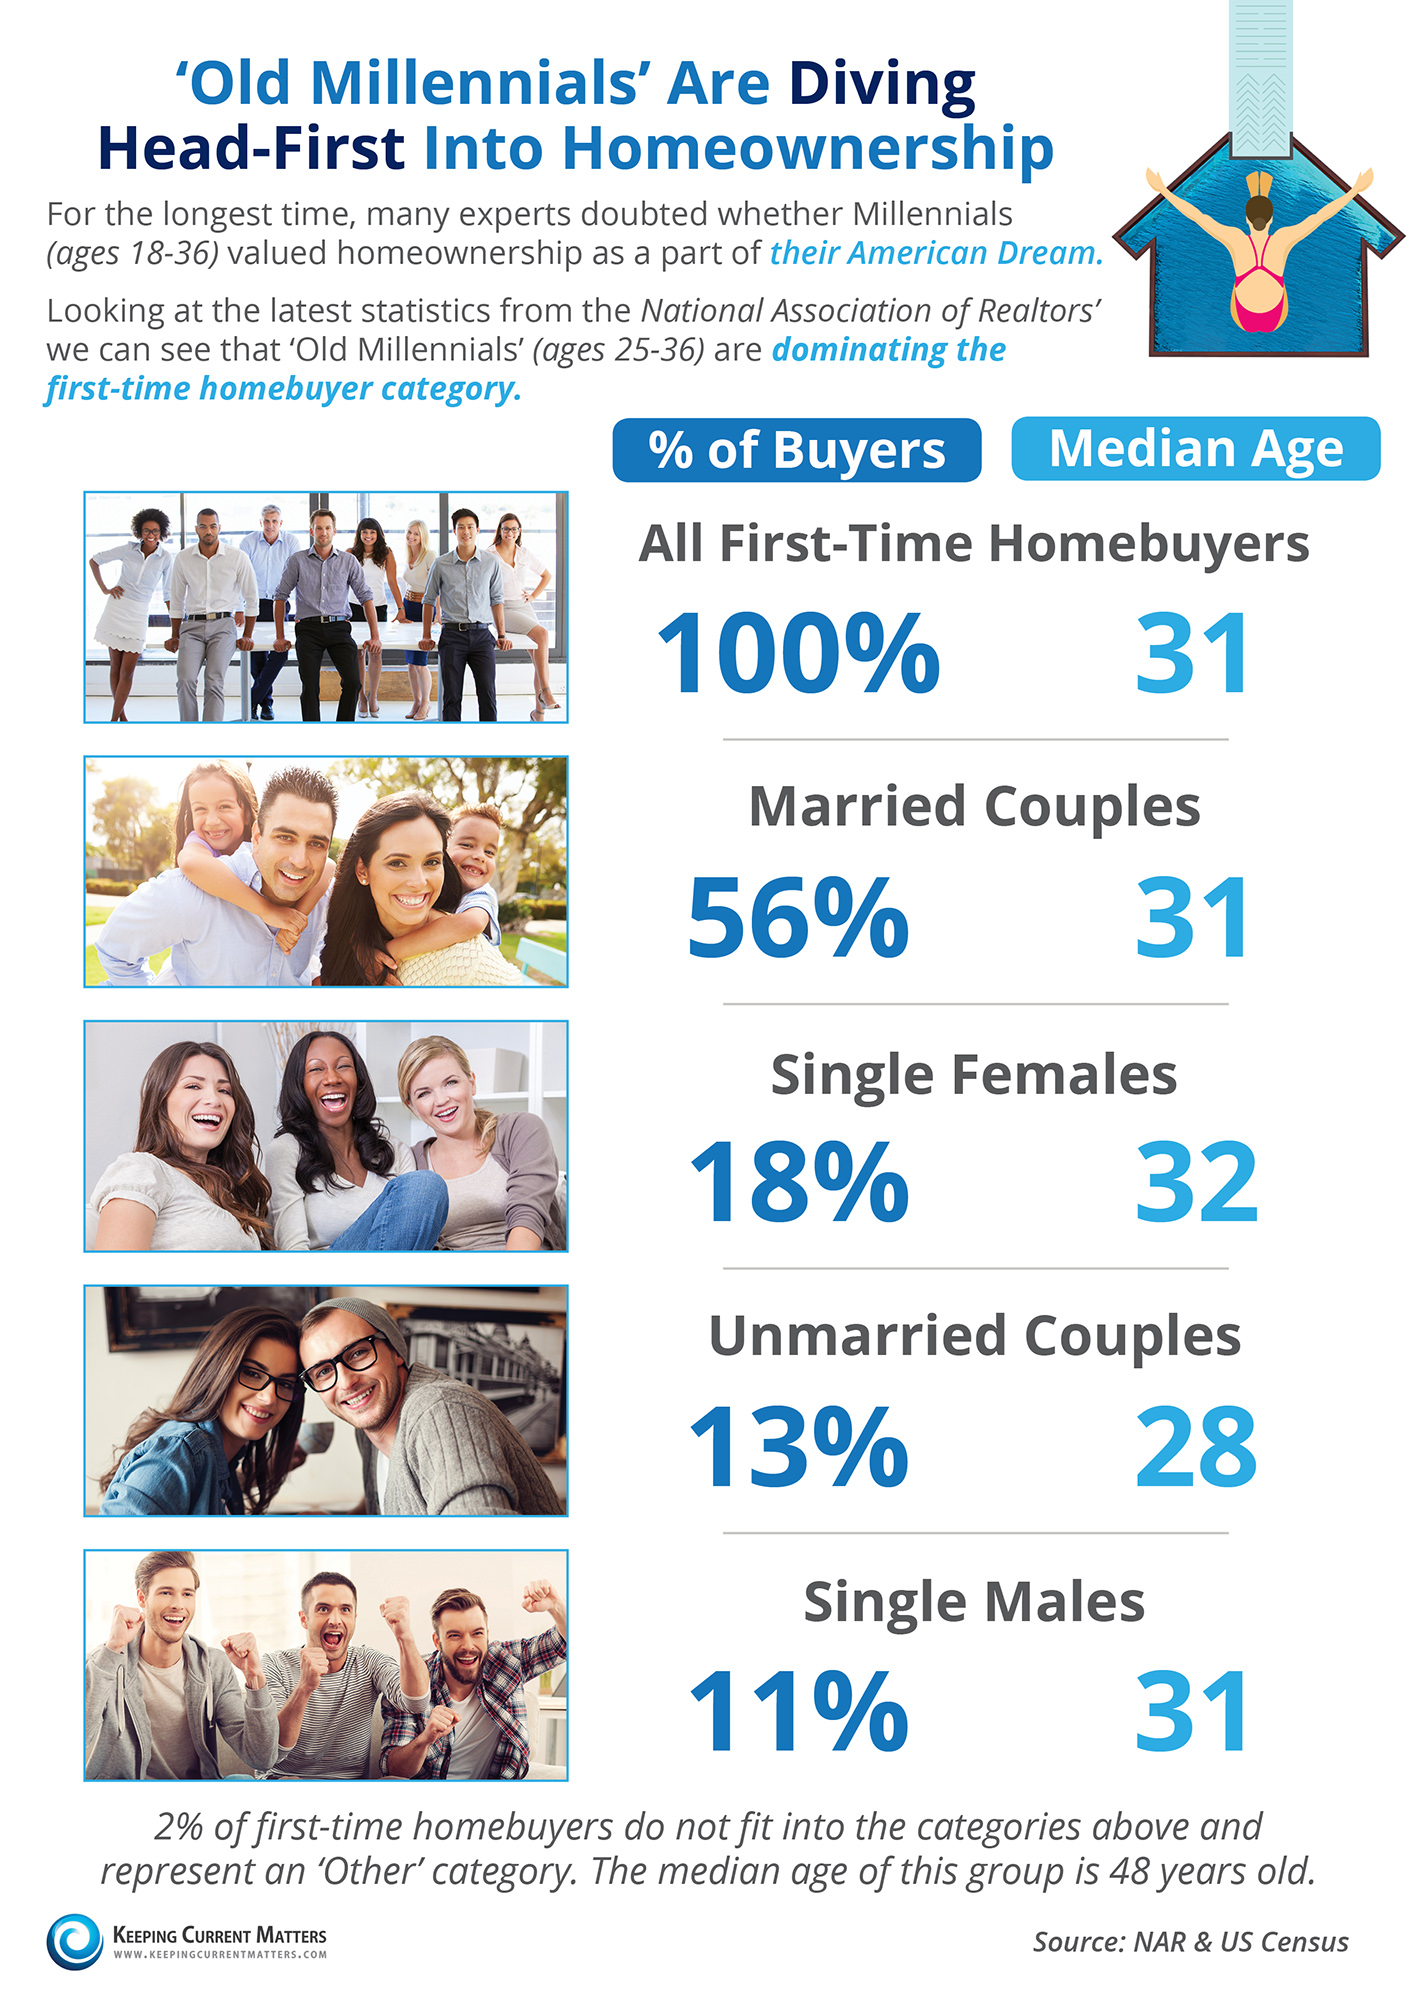 'Old Millennials' Are Diving Head-First into Homeownership [INFOGRAPHIC]   Keeping Current Matters